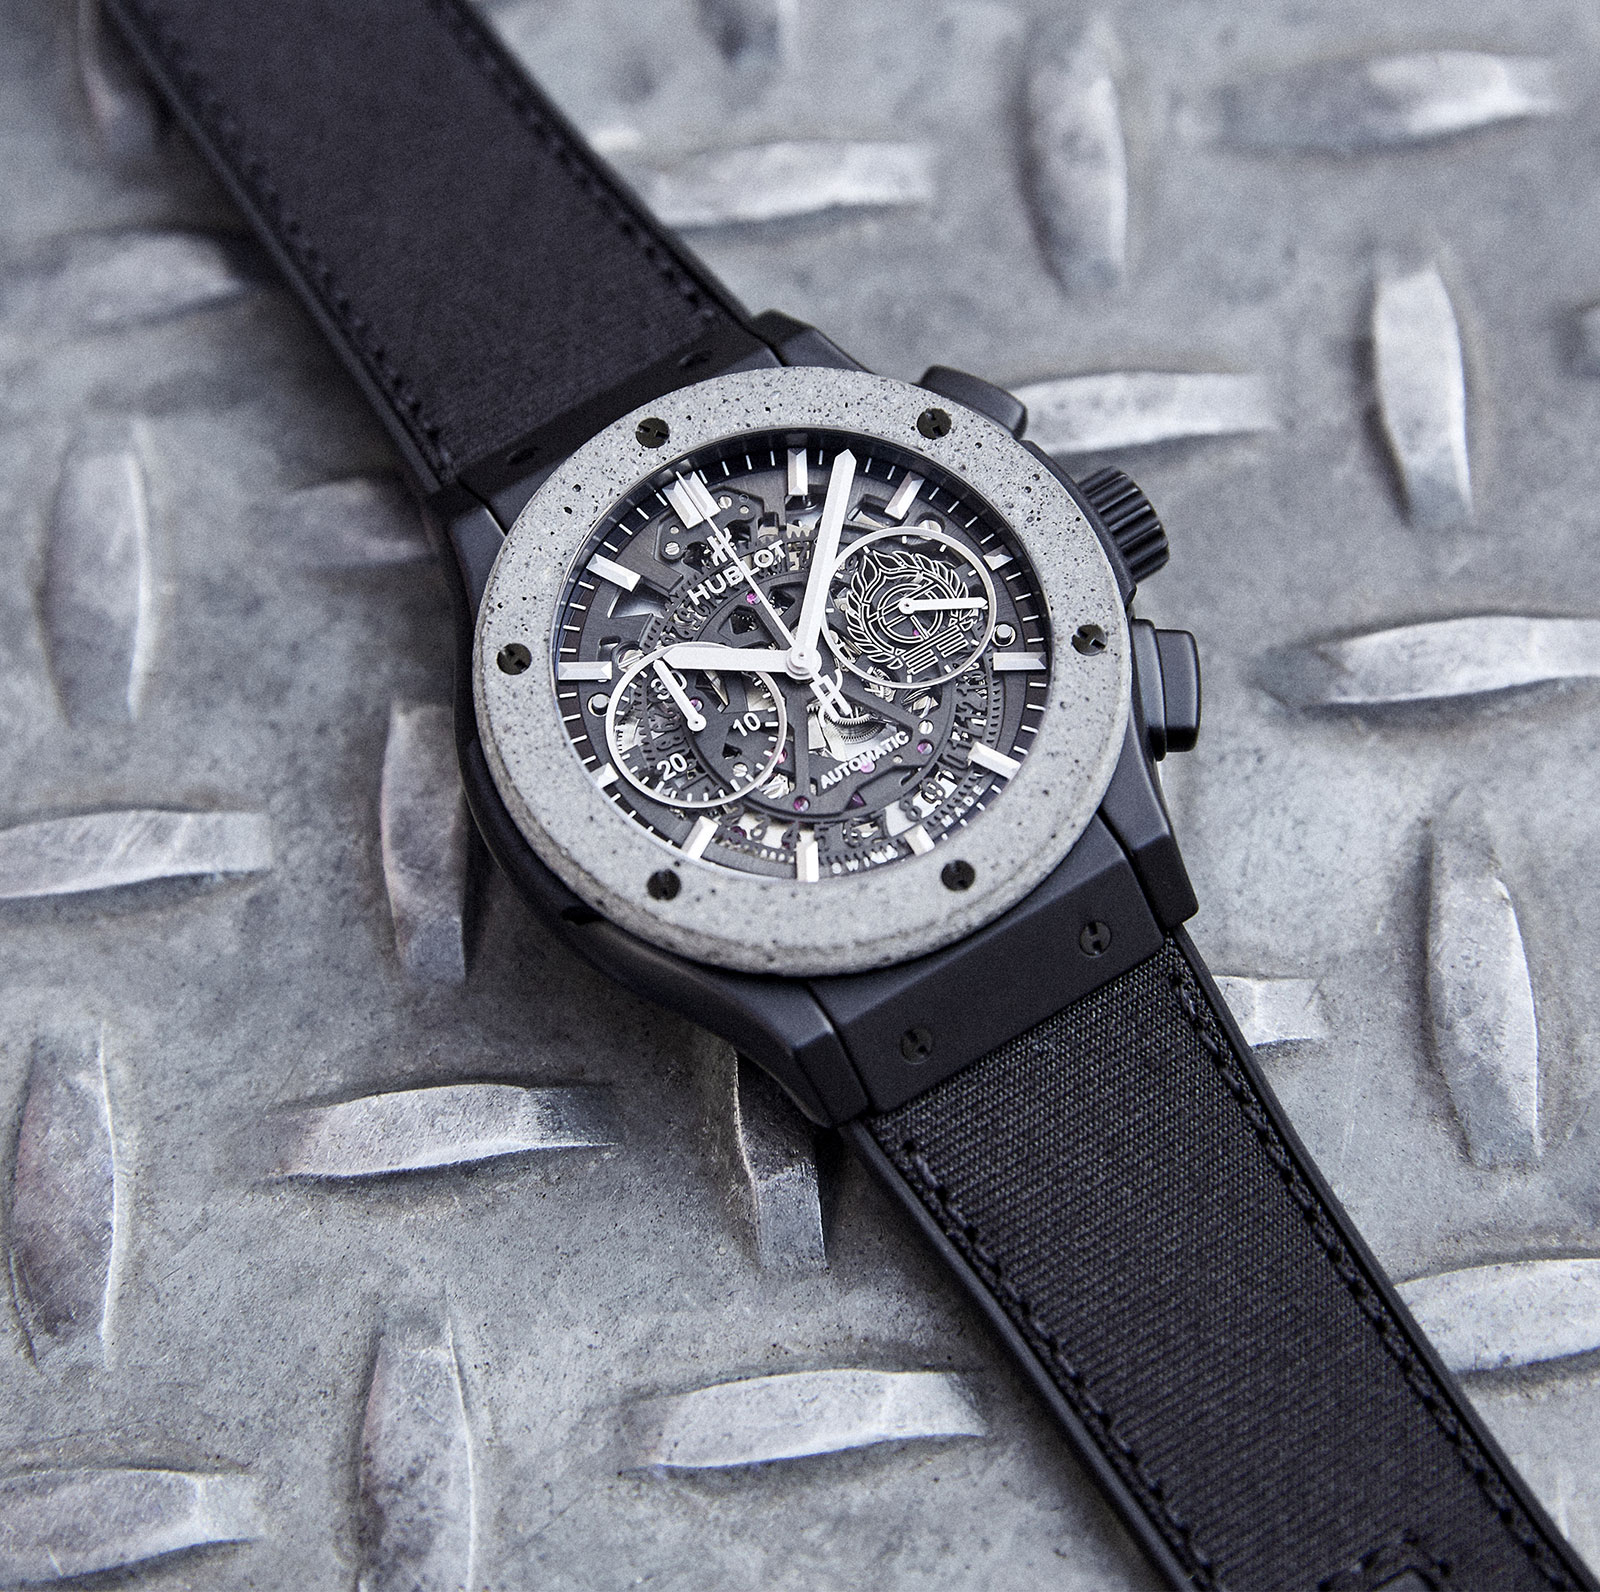 Hublot Classic Fusion Aerofusion Chronograph Concrete Jungle 3